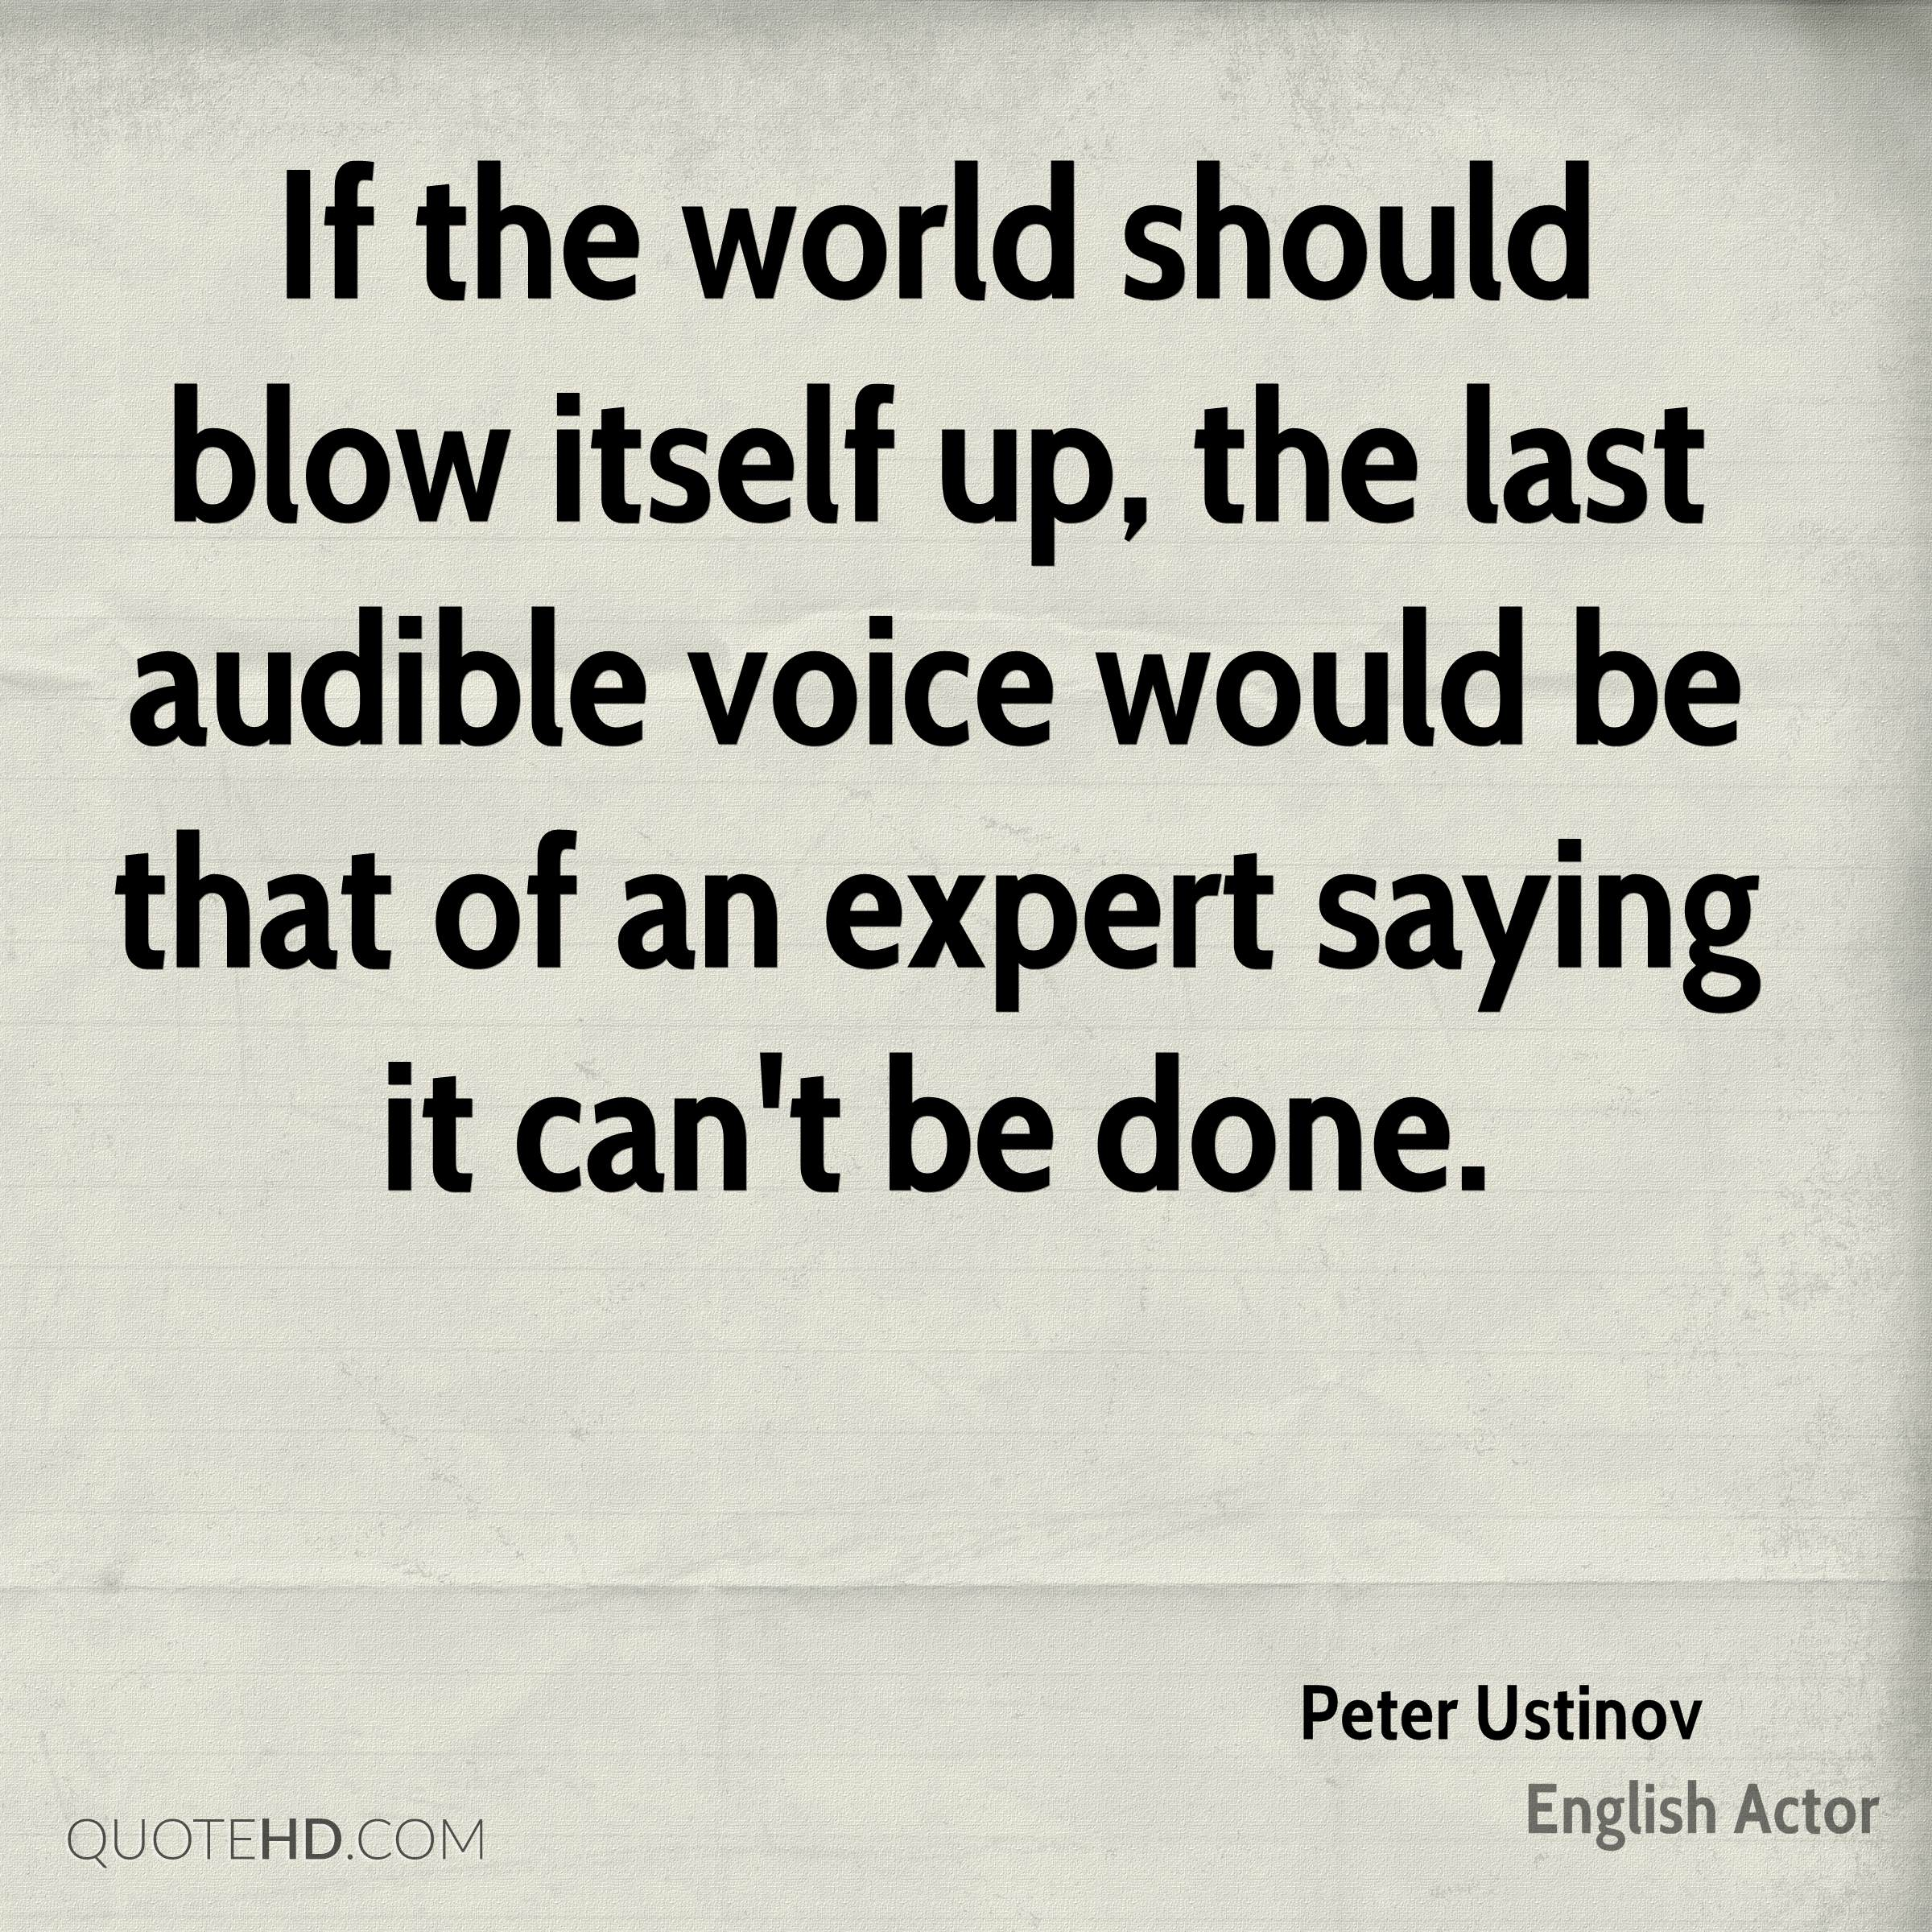 If the world should blow itself up, the last audible voice would be that of an expert saying it can't be done.